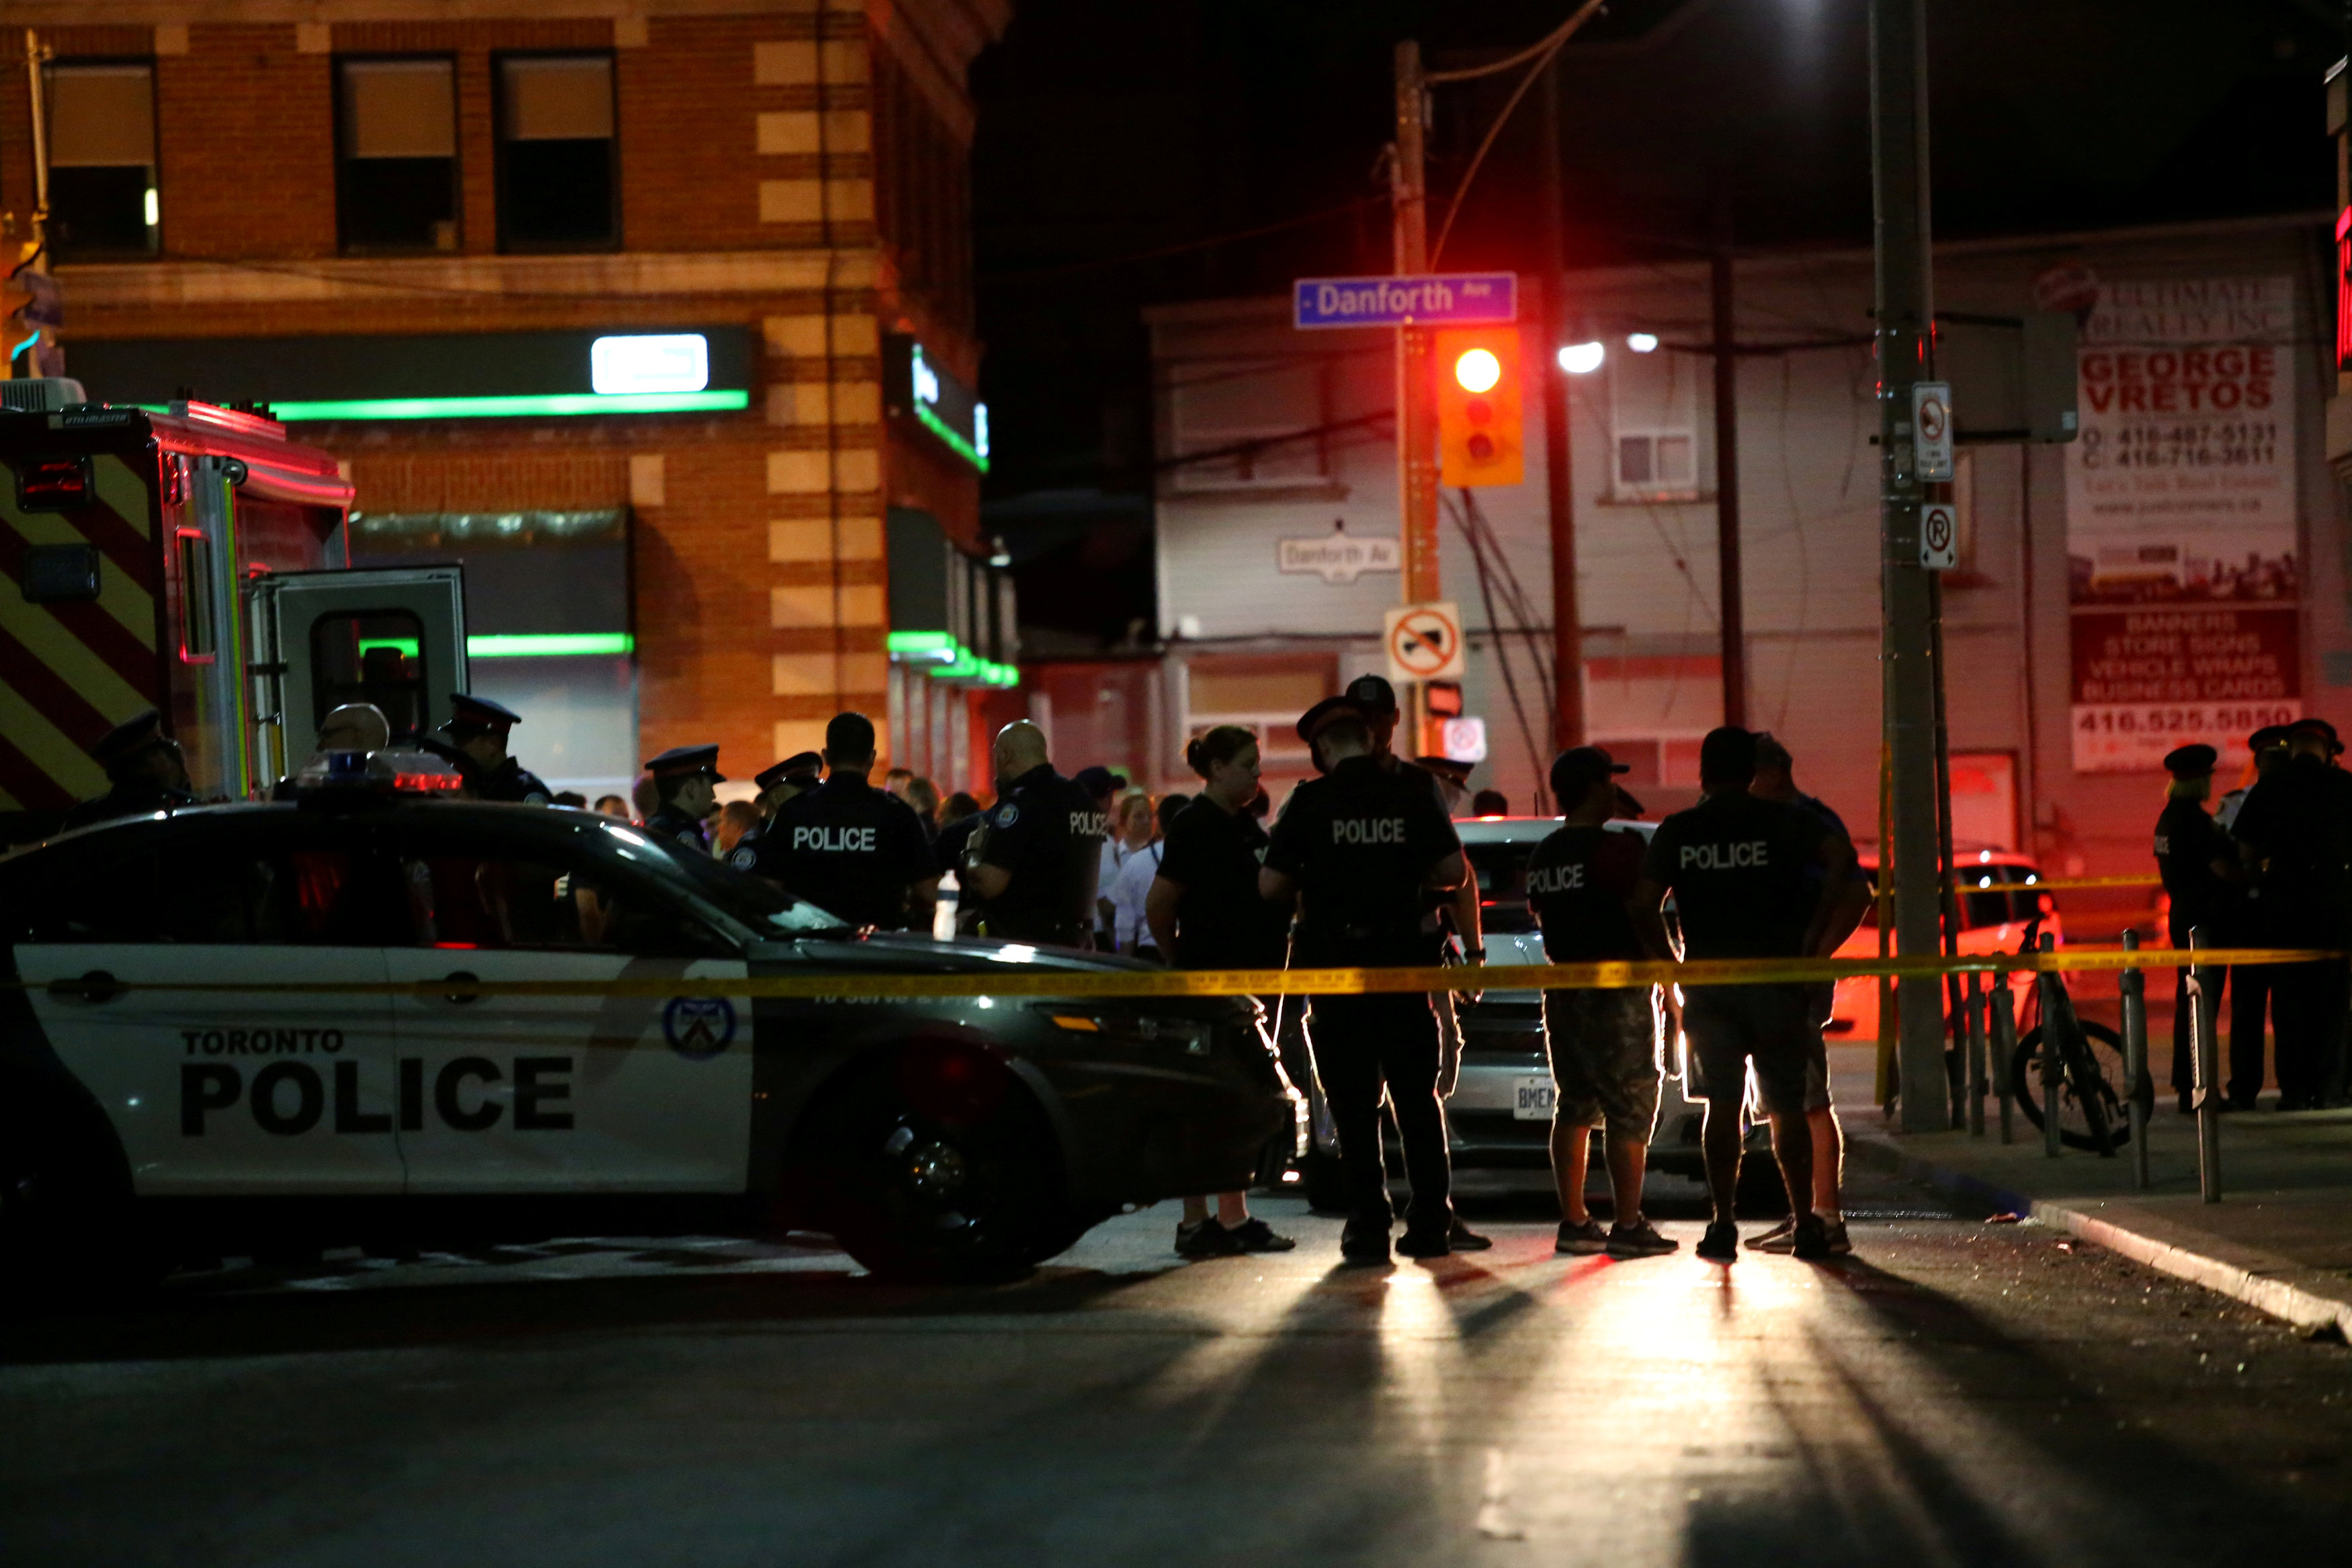 FILE PHOTO: Police are seen near the scene of a mass shooting in Toronto, Canada, July 22, 2018. REUTERS/Chris Helgr